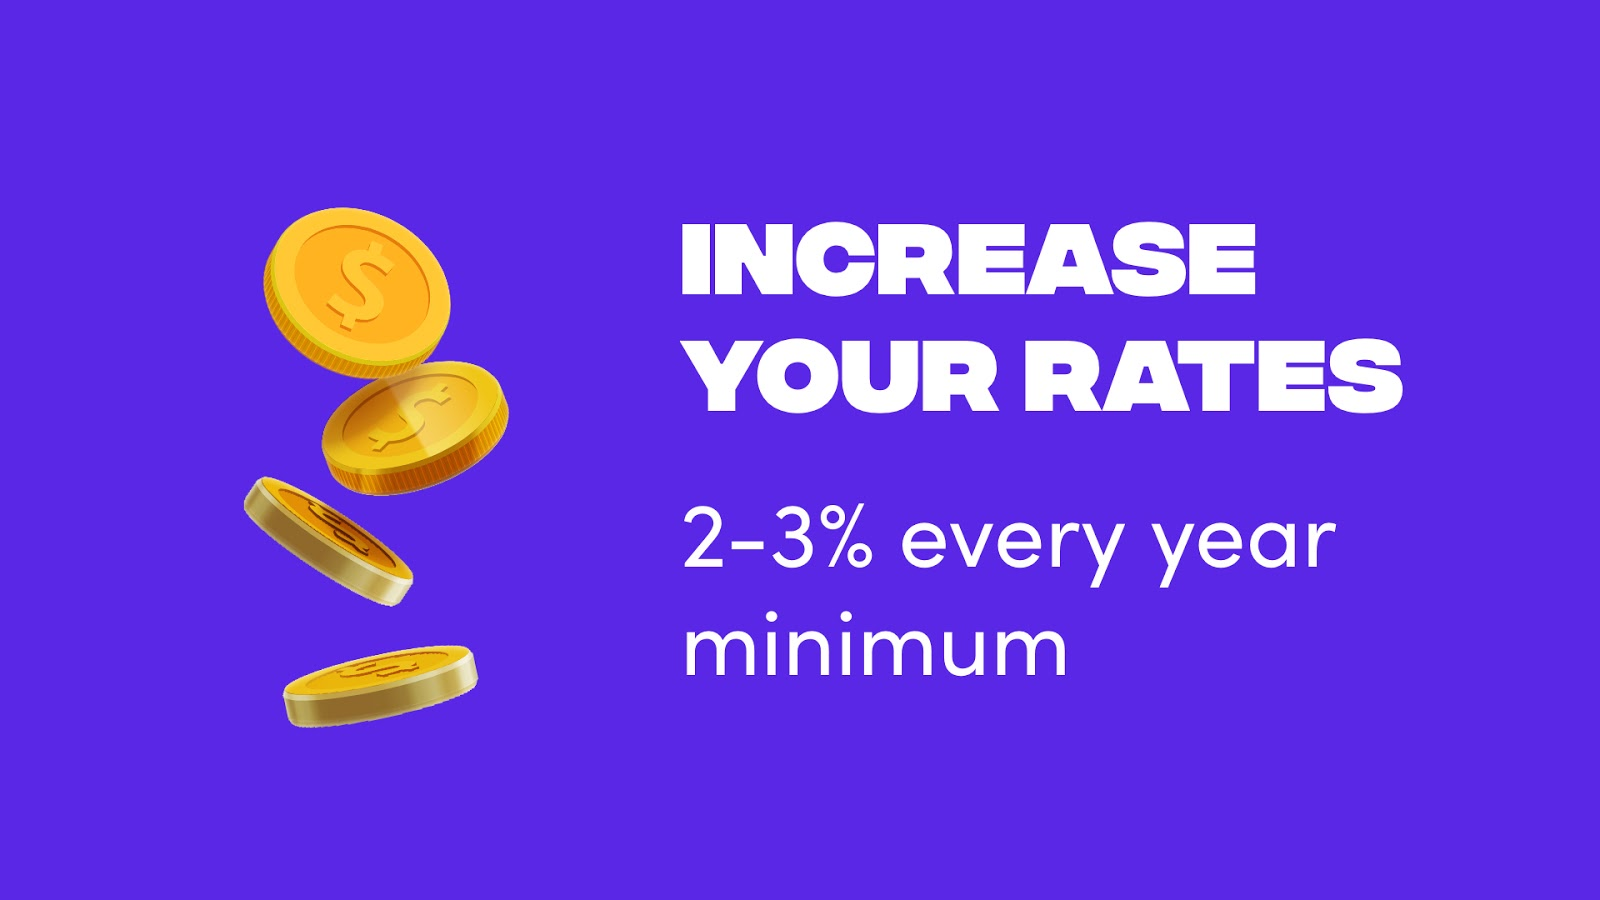 Increase your rates 2-3% every year minimum